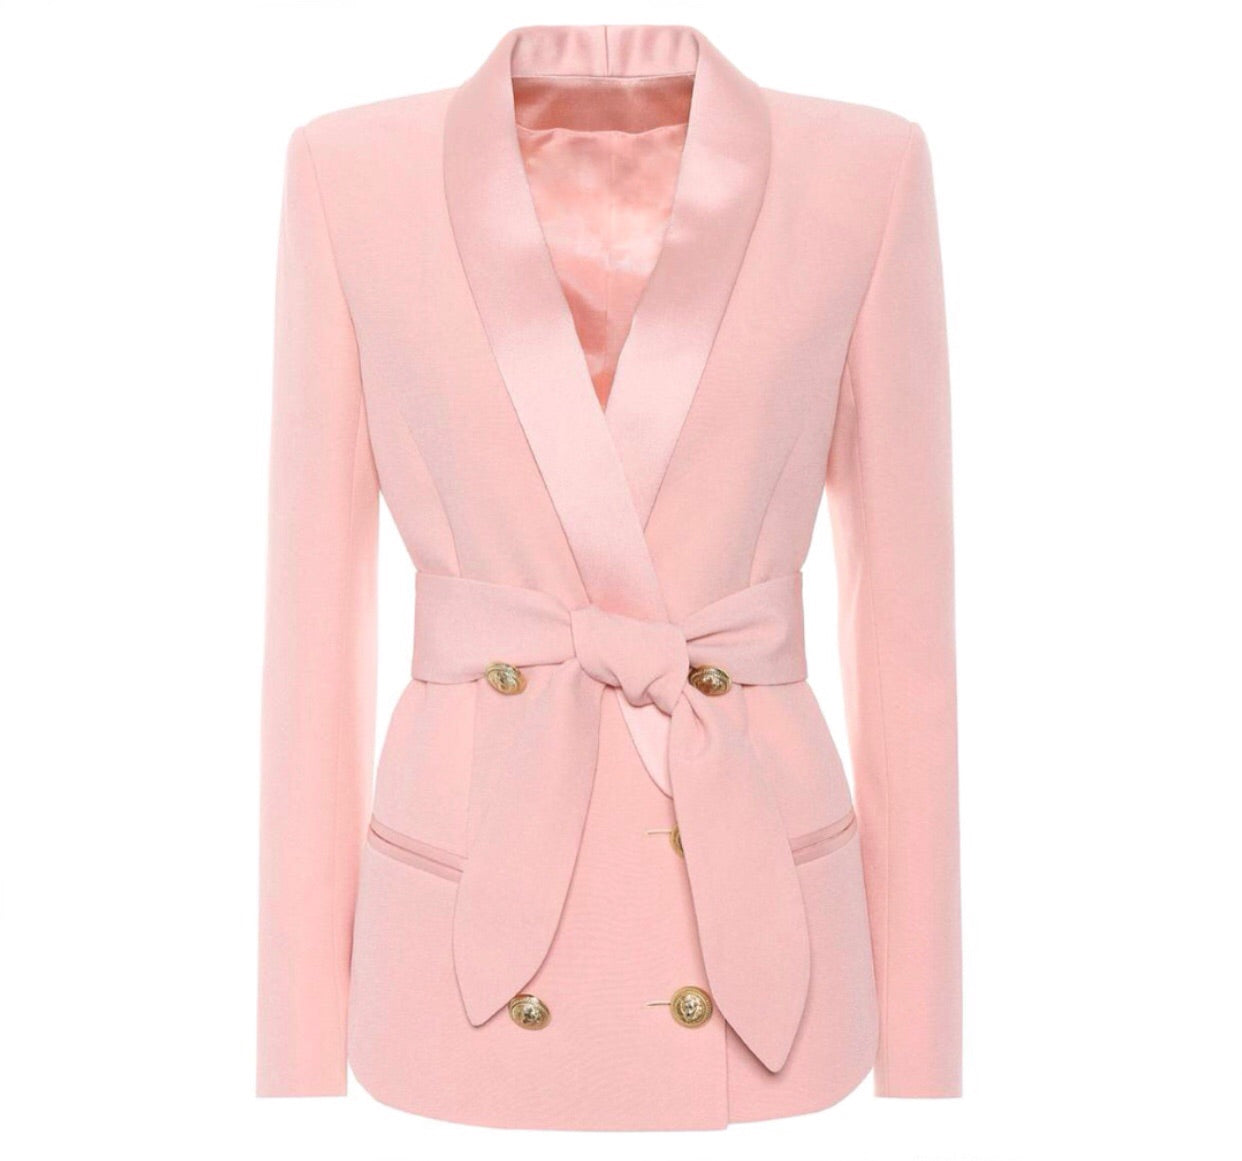 Double Breasted Tie Blazer with Gold Hardware - Pink